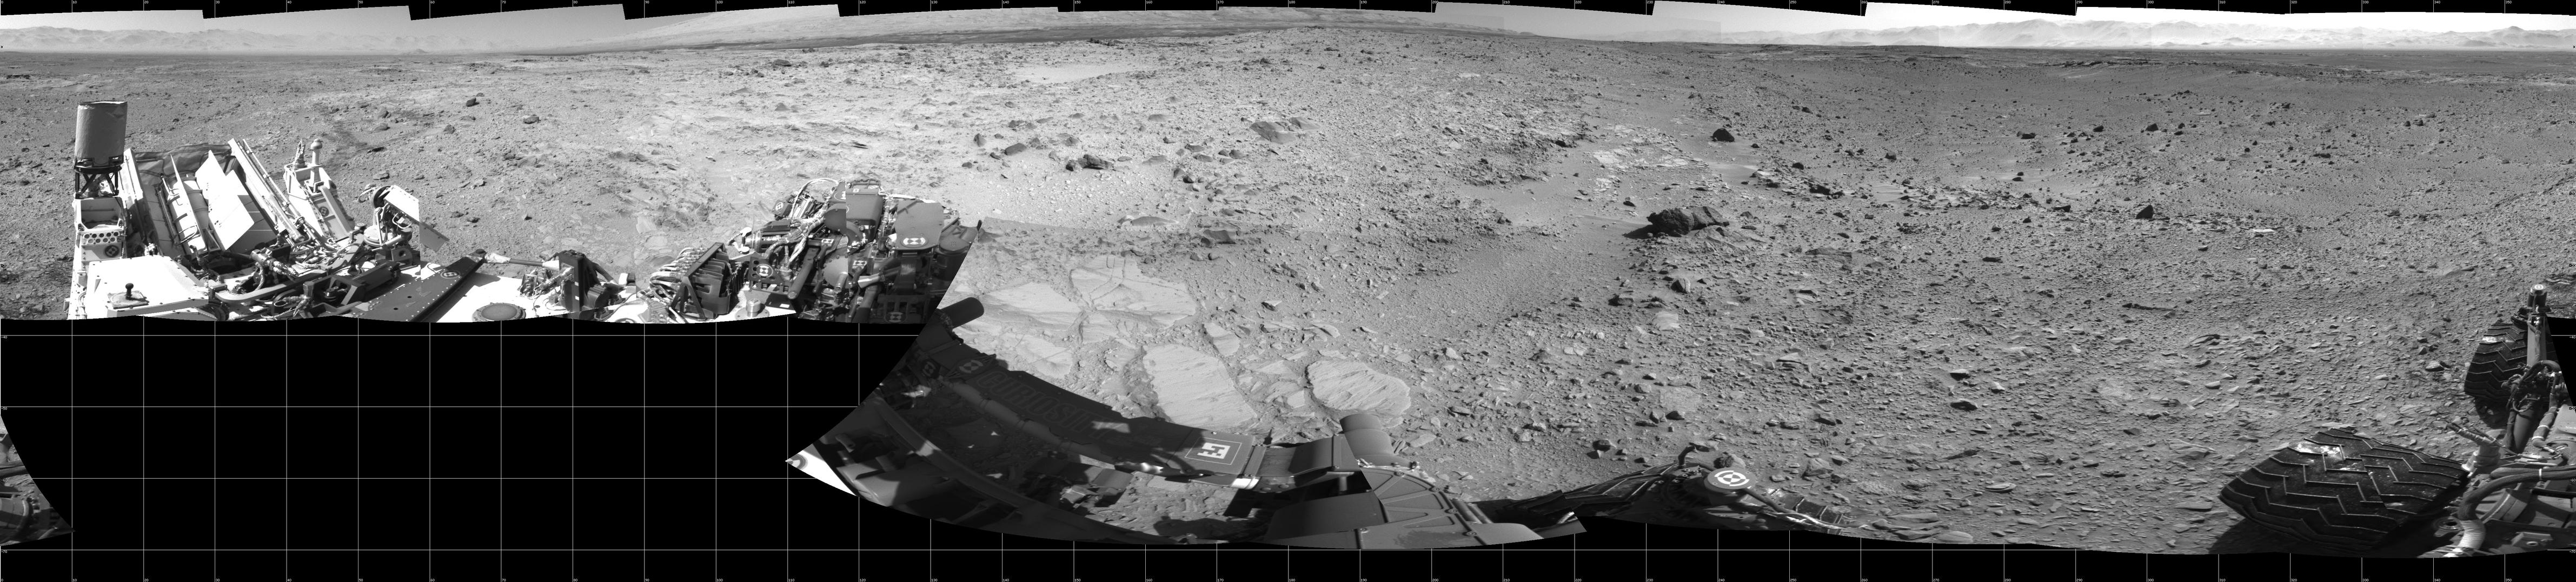 NASA's Mars rover Curiosity captured this 360-degree view using its Navigation Camera (Navcam) after a 17-foot (5.3 meter) drive on 477th Martian day, or sol, of the rover's work on Mars (Dec. 8, 2013).